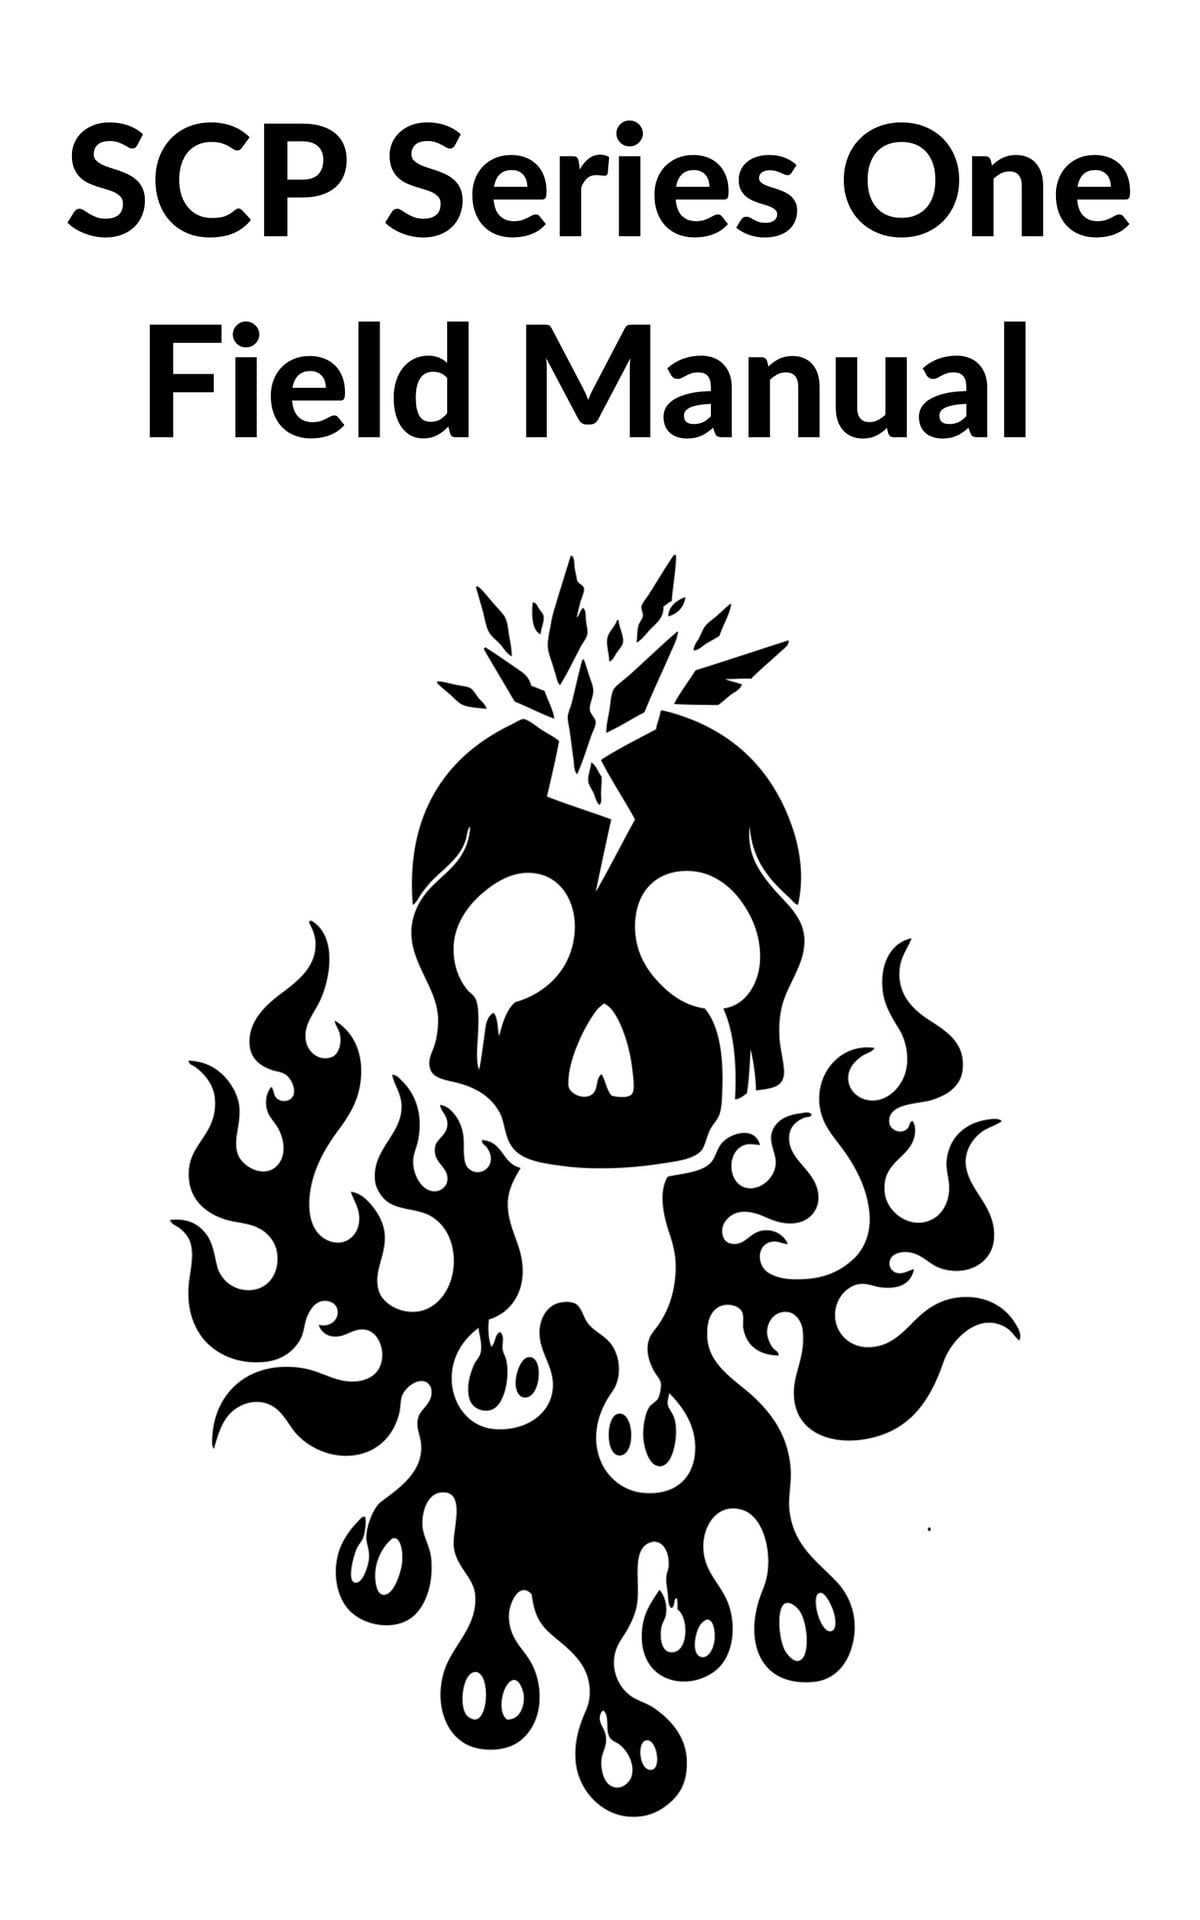 SCP Series One Field Manual eBook by SCP Foundation